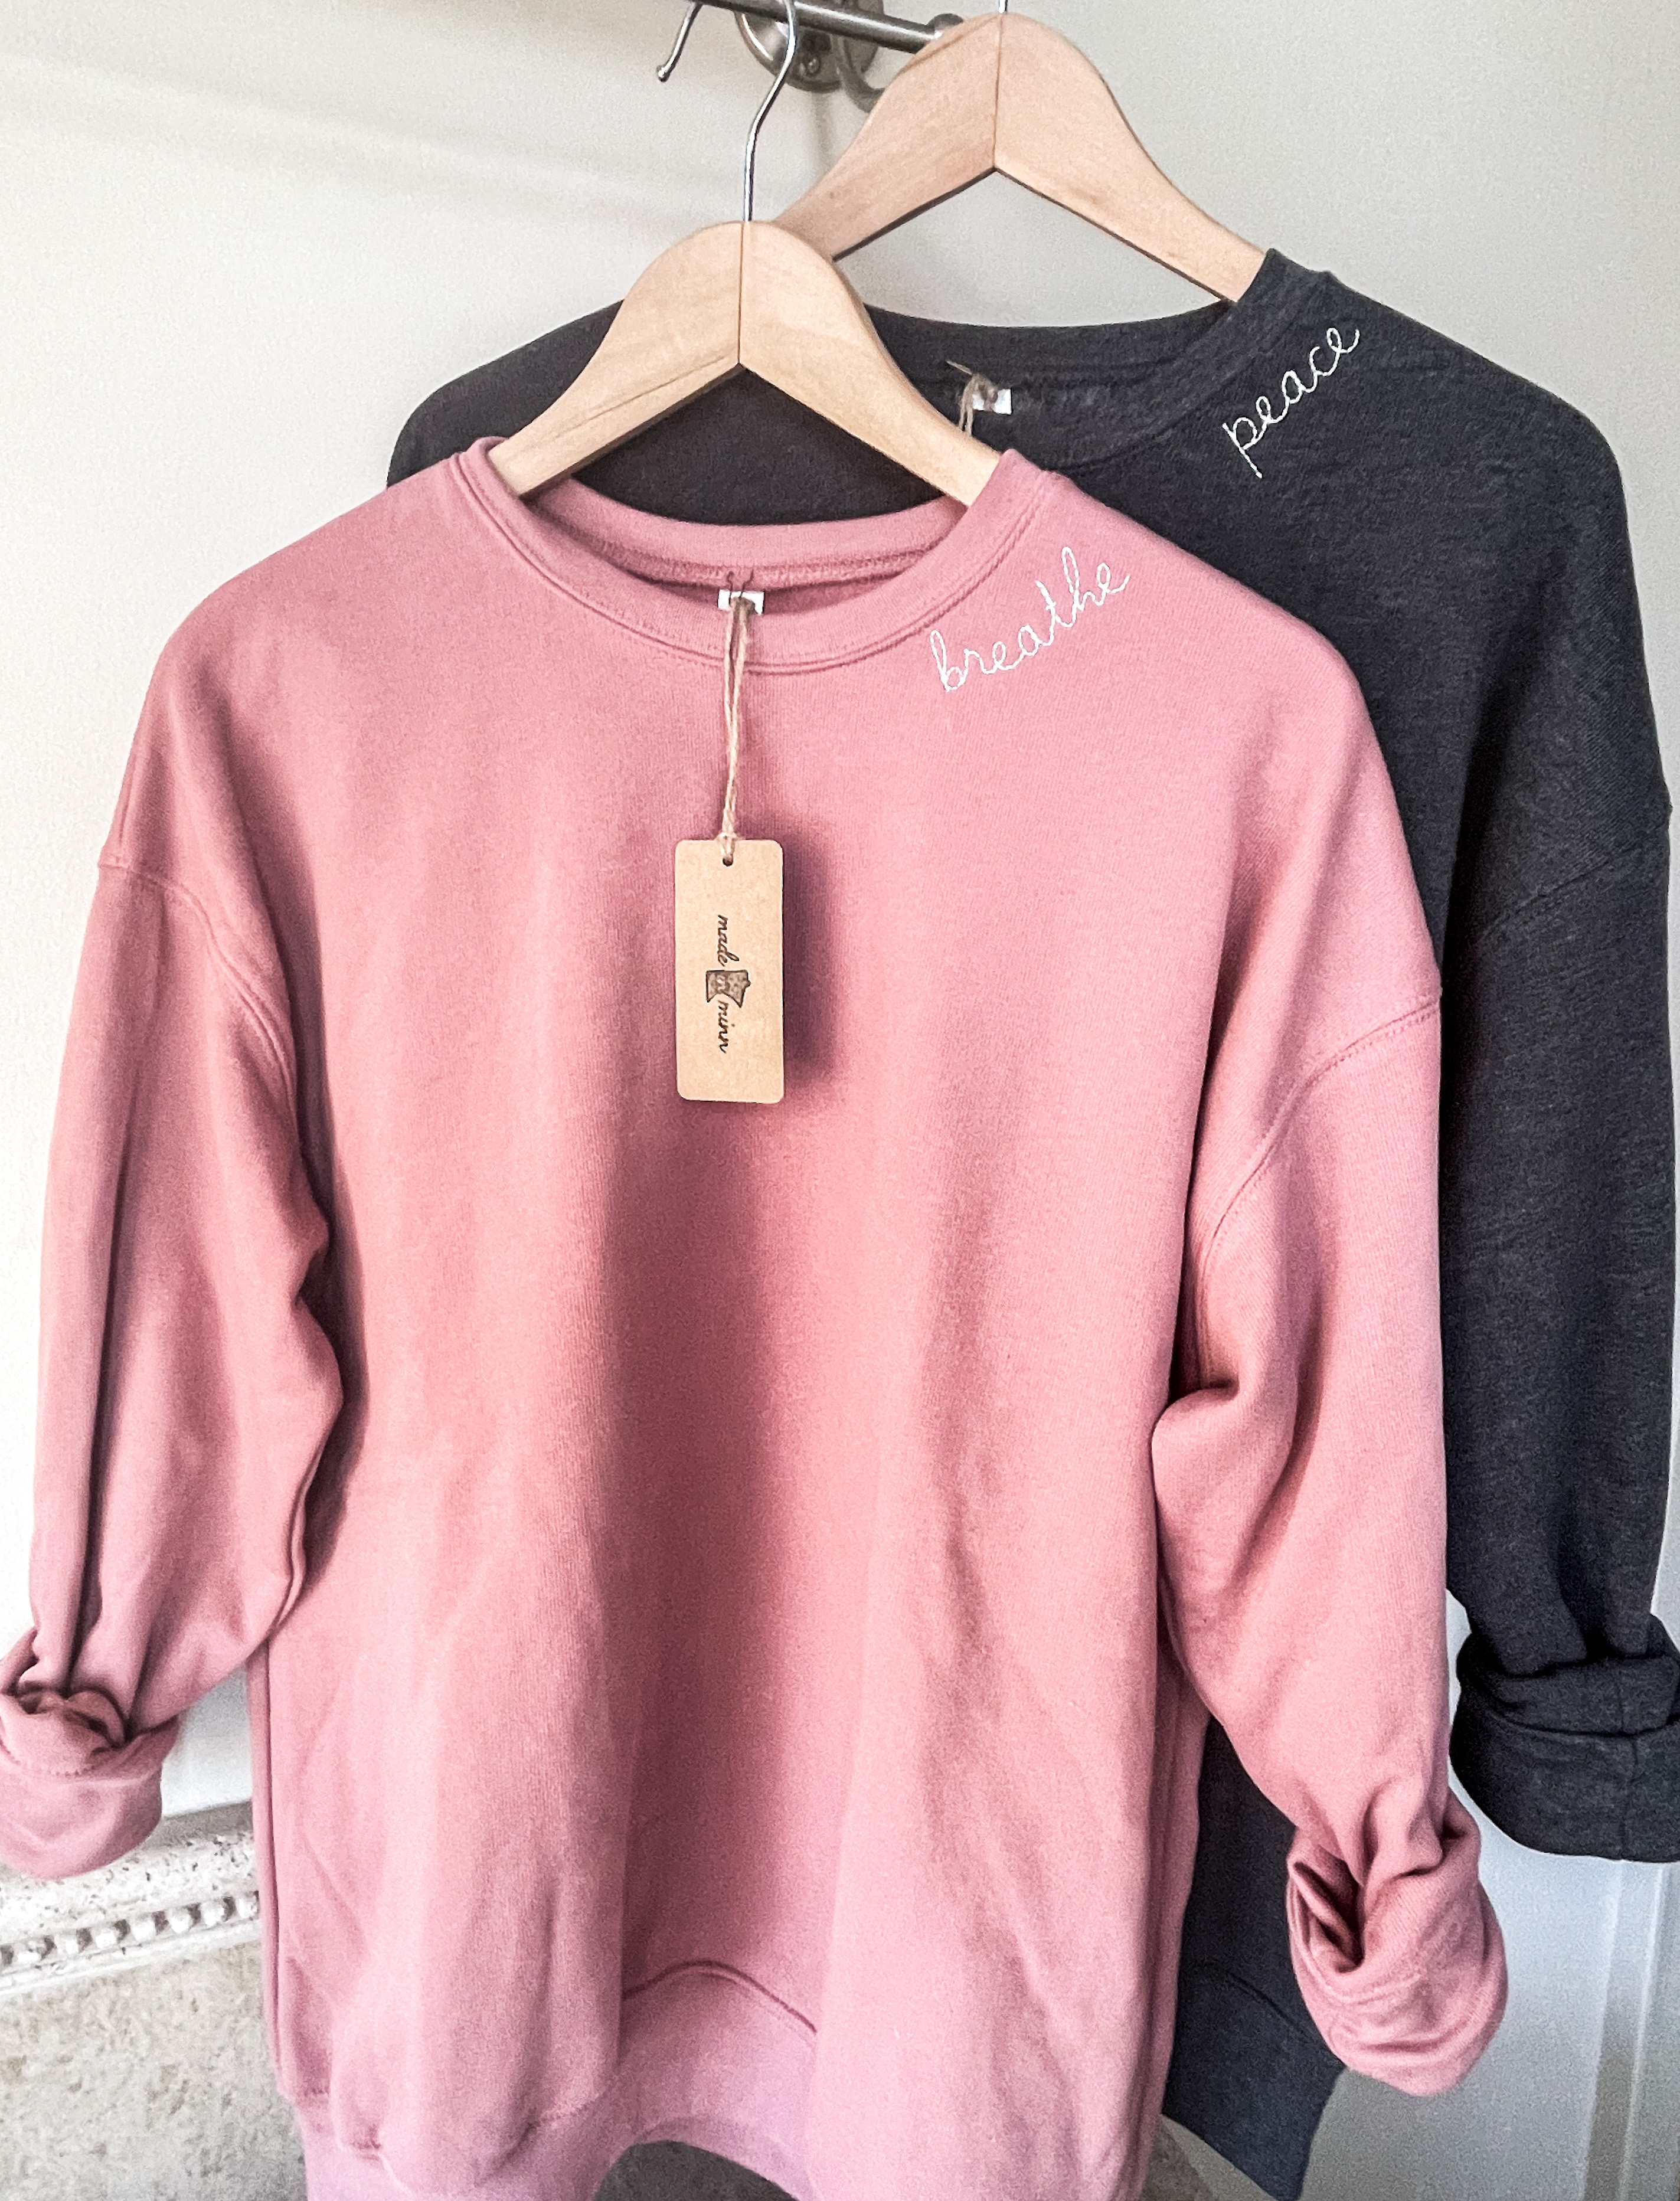 Embroidered Crewneck, Embroidered Sweatshirt, Around the Collar Embroidery, Breathe Crewneck, Peace